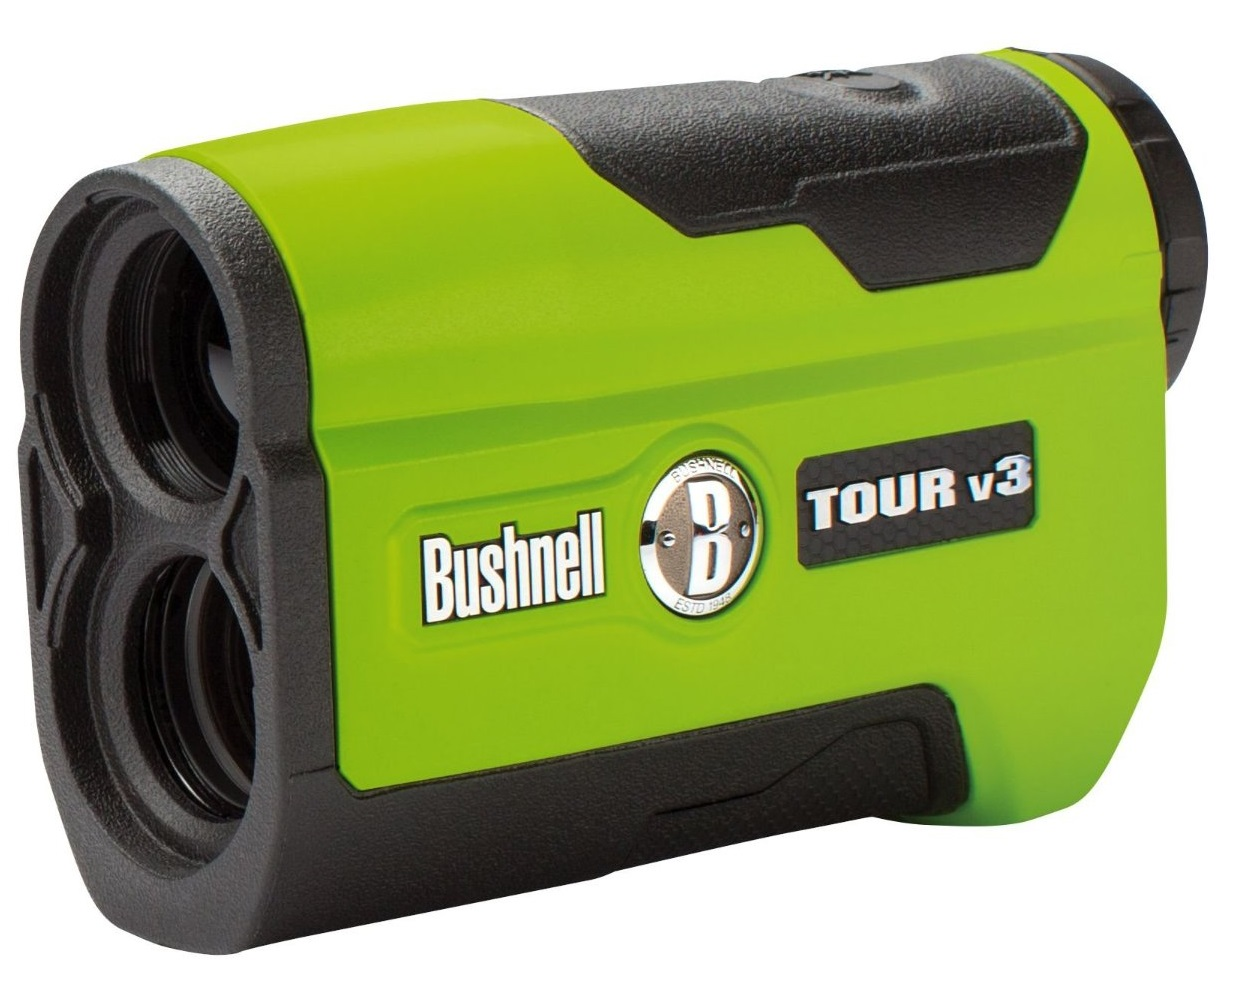 Bushnell Golf Digital Laser Range Finders